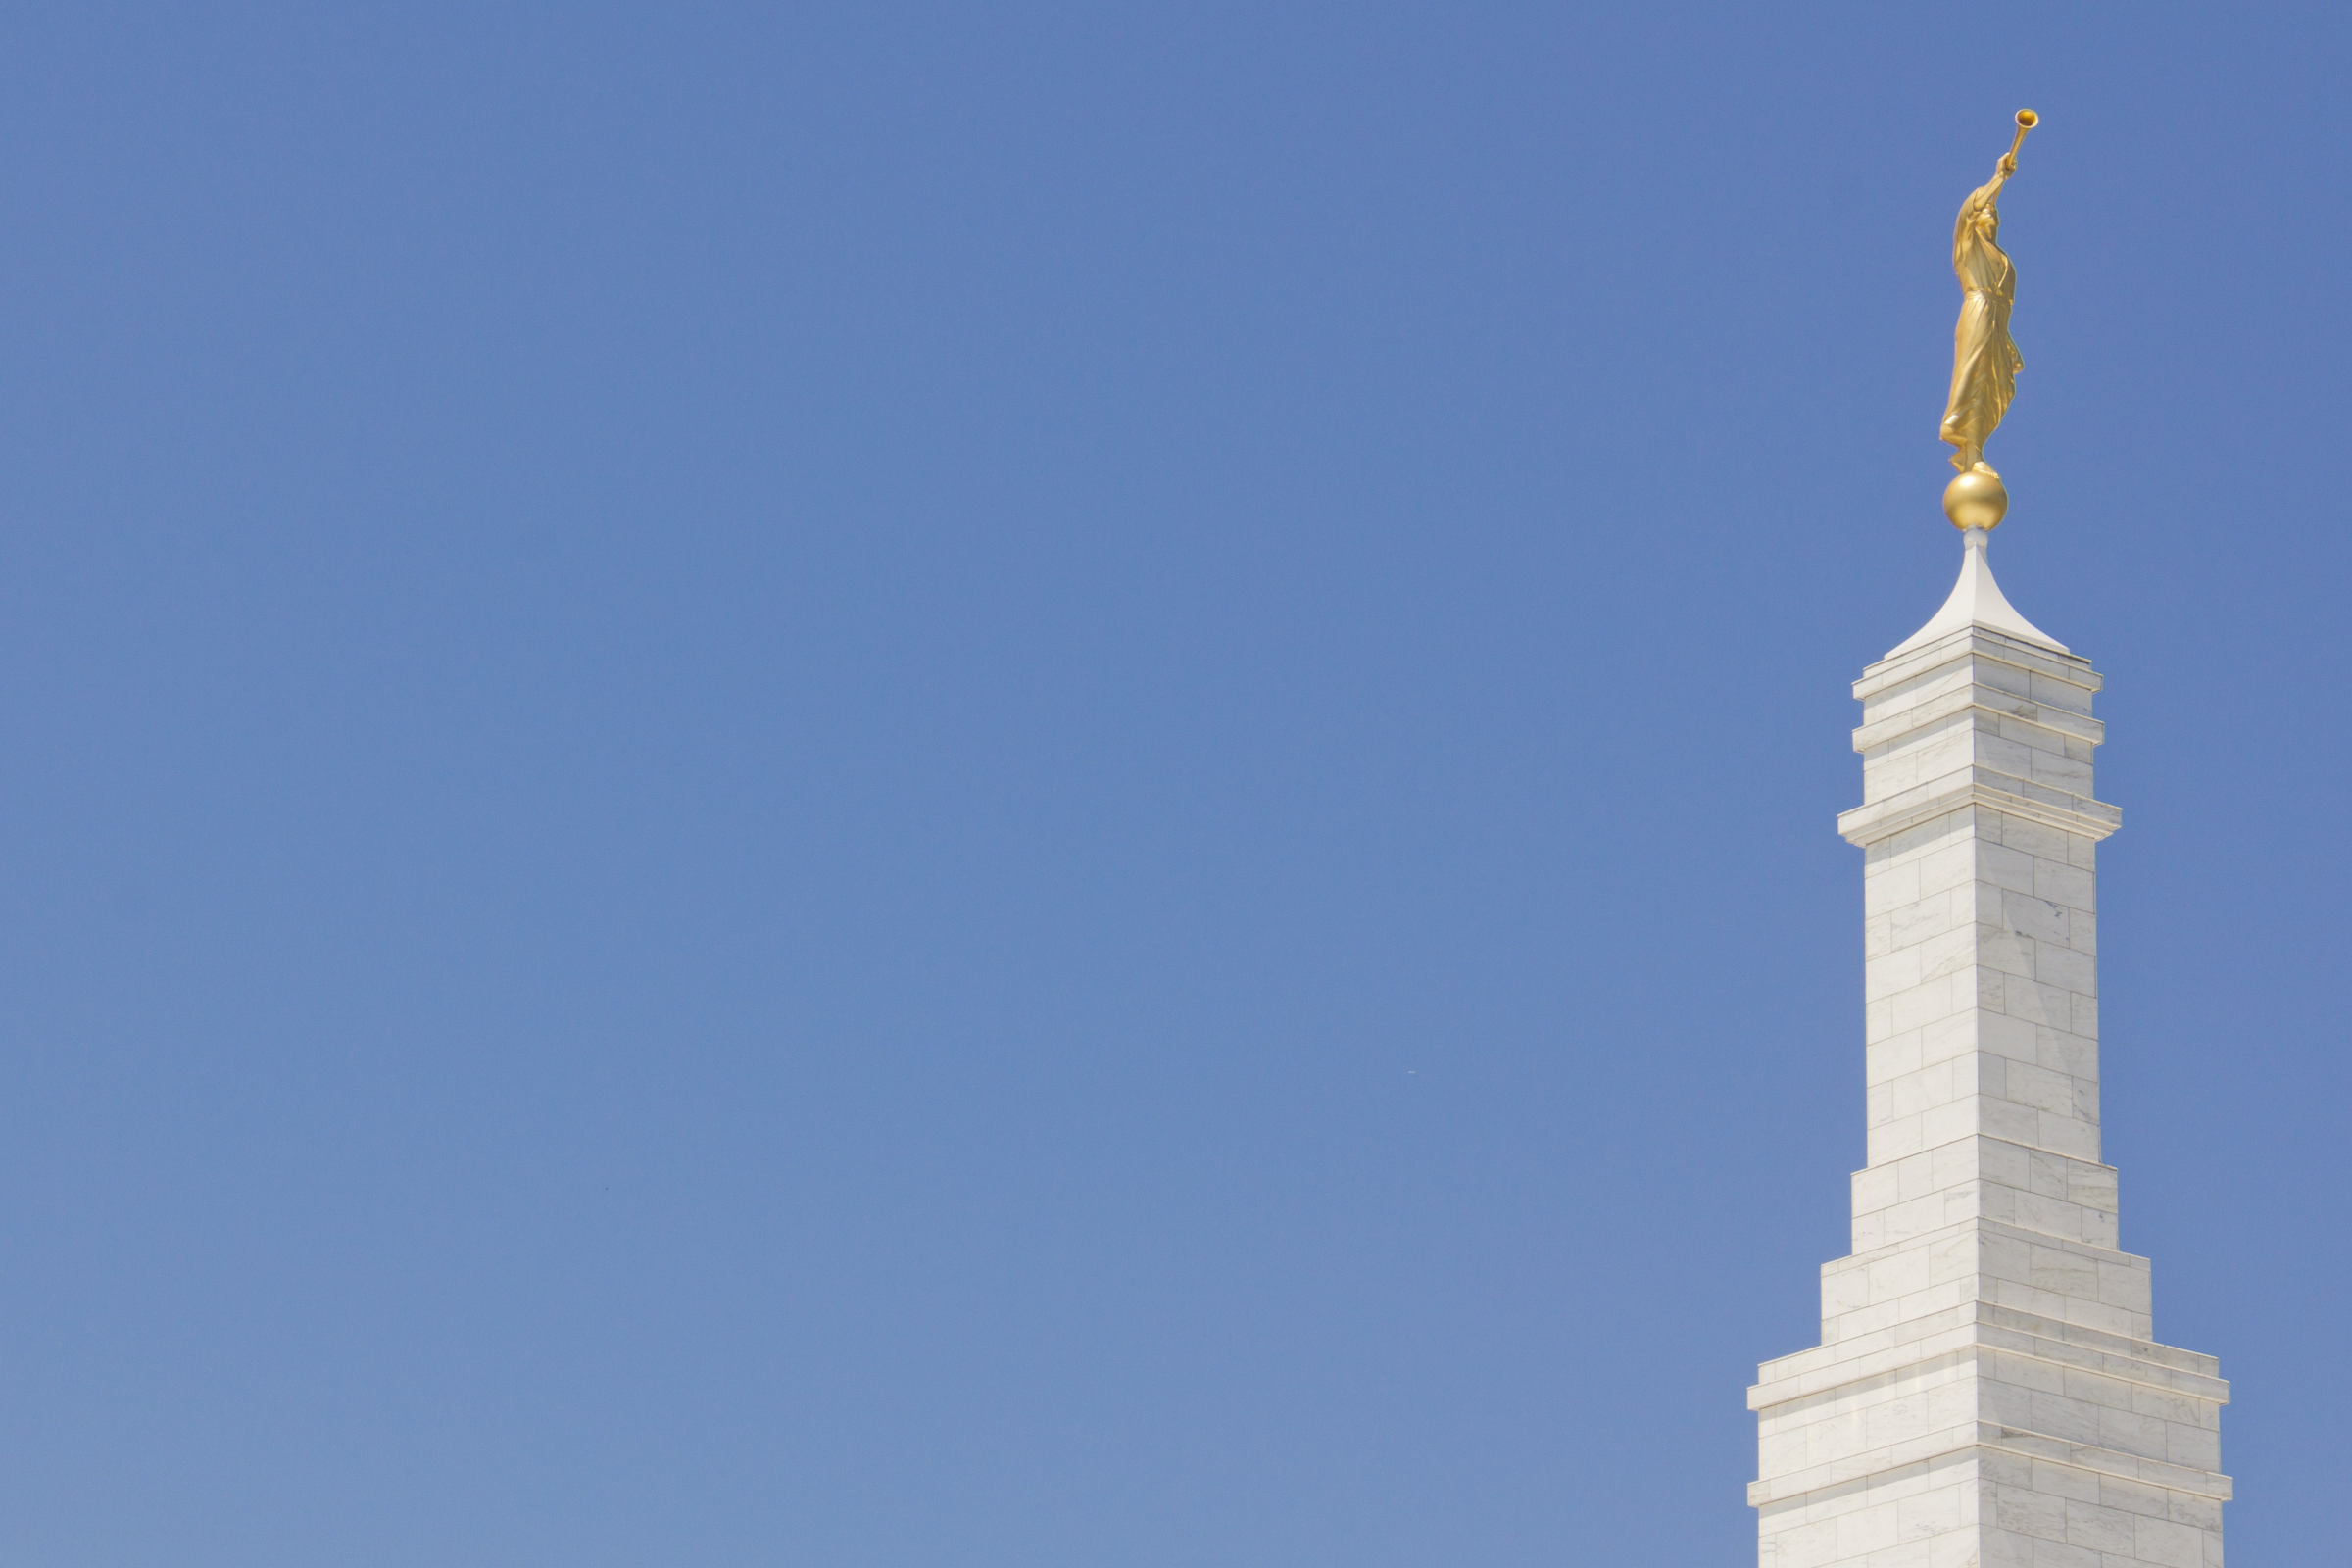 The spire of the columbia south carolina temple - Lds temple wallpaper ...